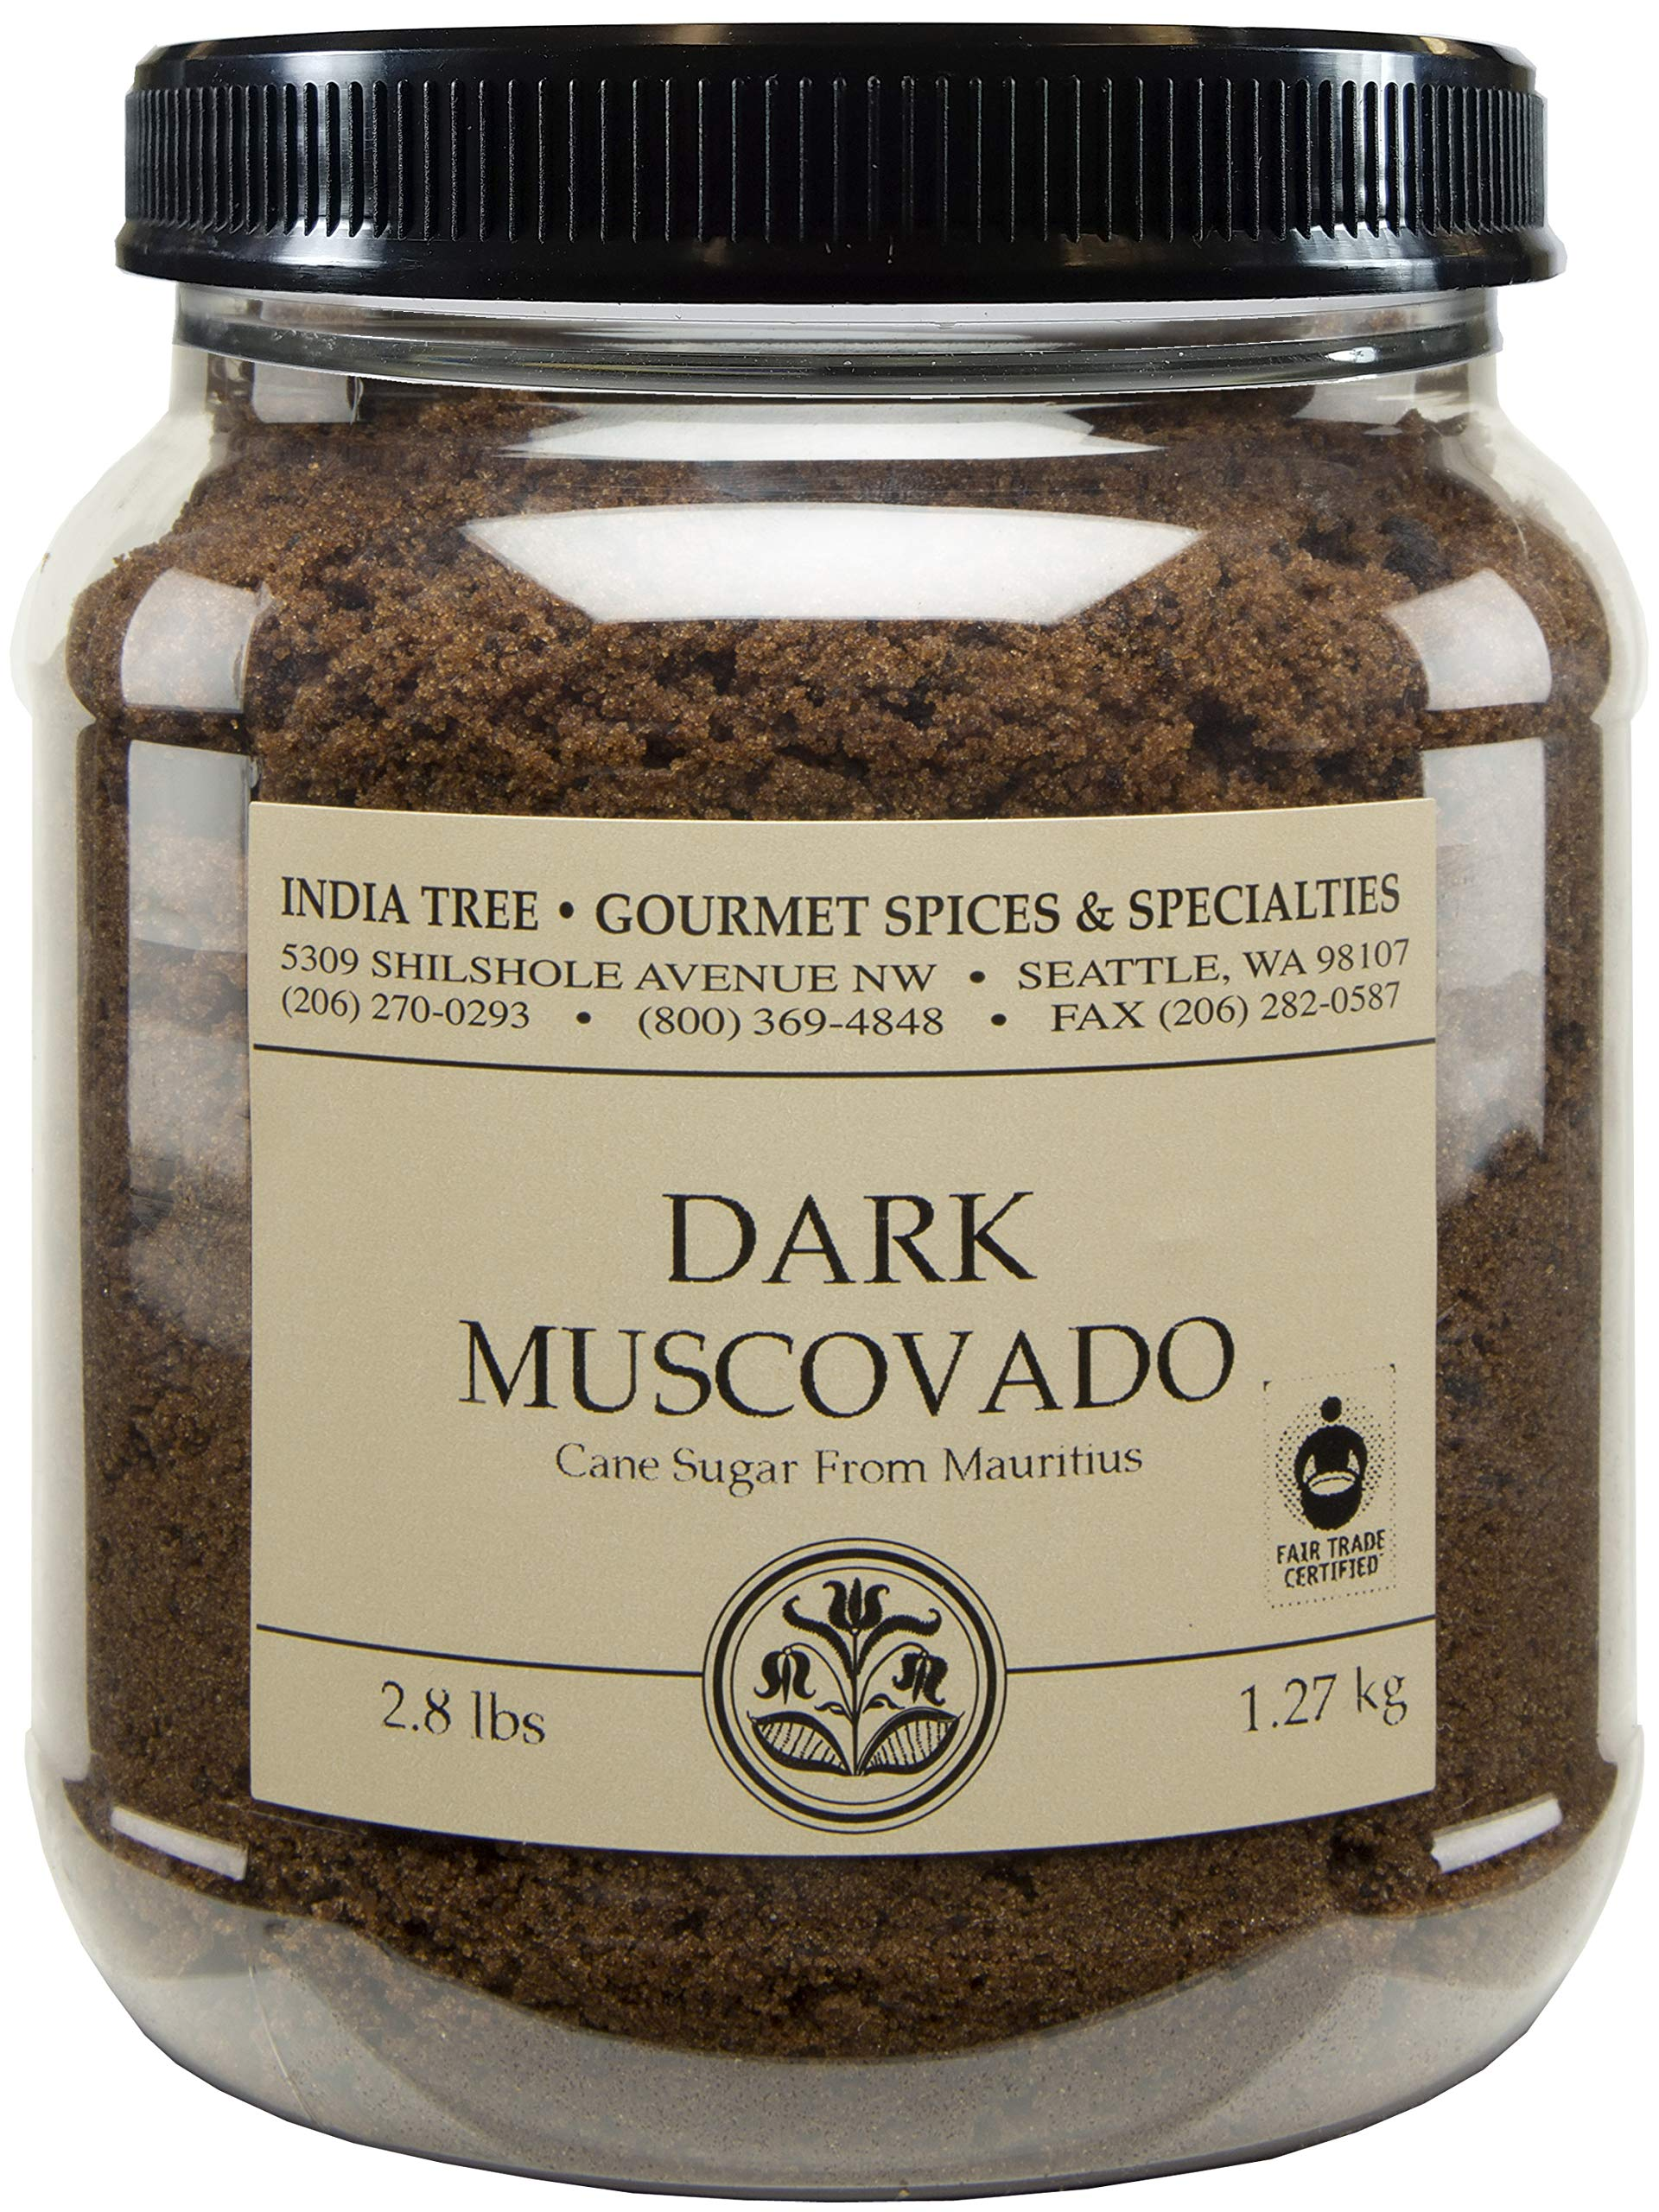 India Tree Dark Muscovado Sugar, 2.8 lb (Pack of 2) by India Tree